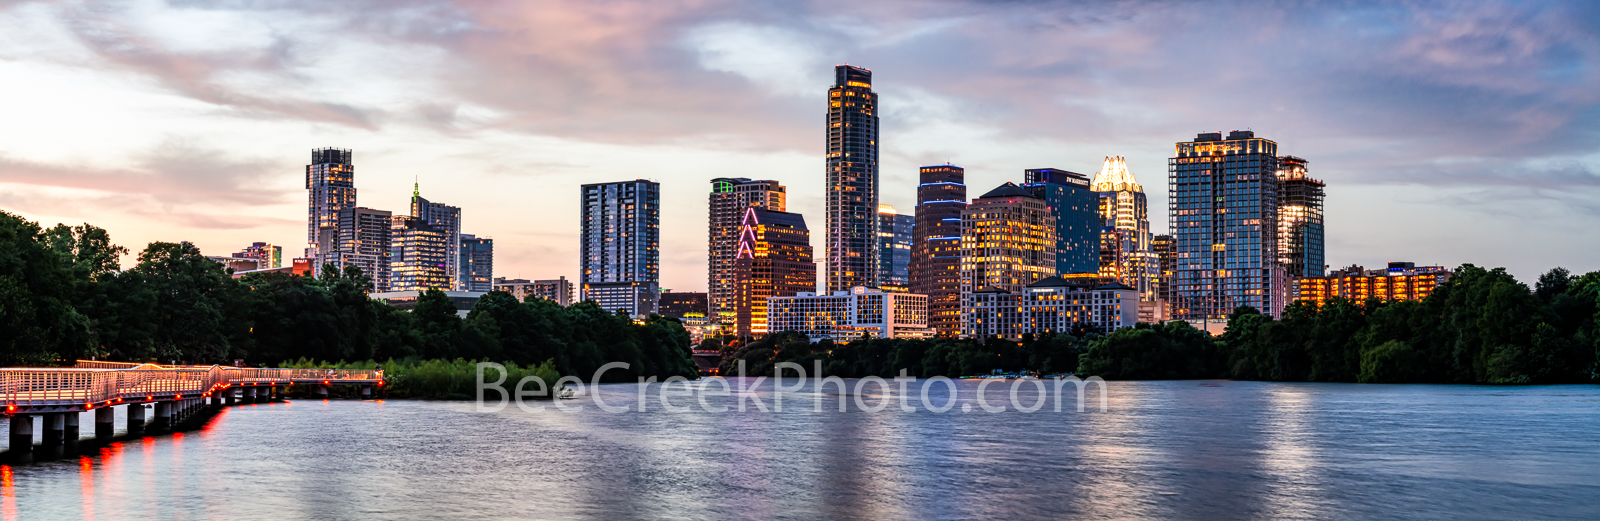 Austin, Skyline, Austin skyline, Texas, pics of Texas,Texas skylines, images of Austin, urban landscape, city, downtown, skyscrapers, color, dusk, clolor, sunset, boardwalk, hike and bike trail, lady , photo